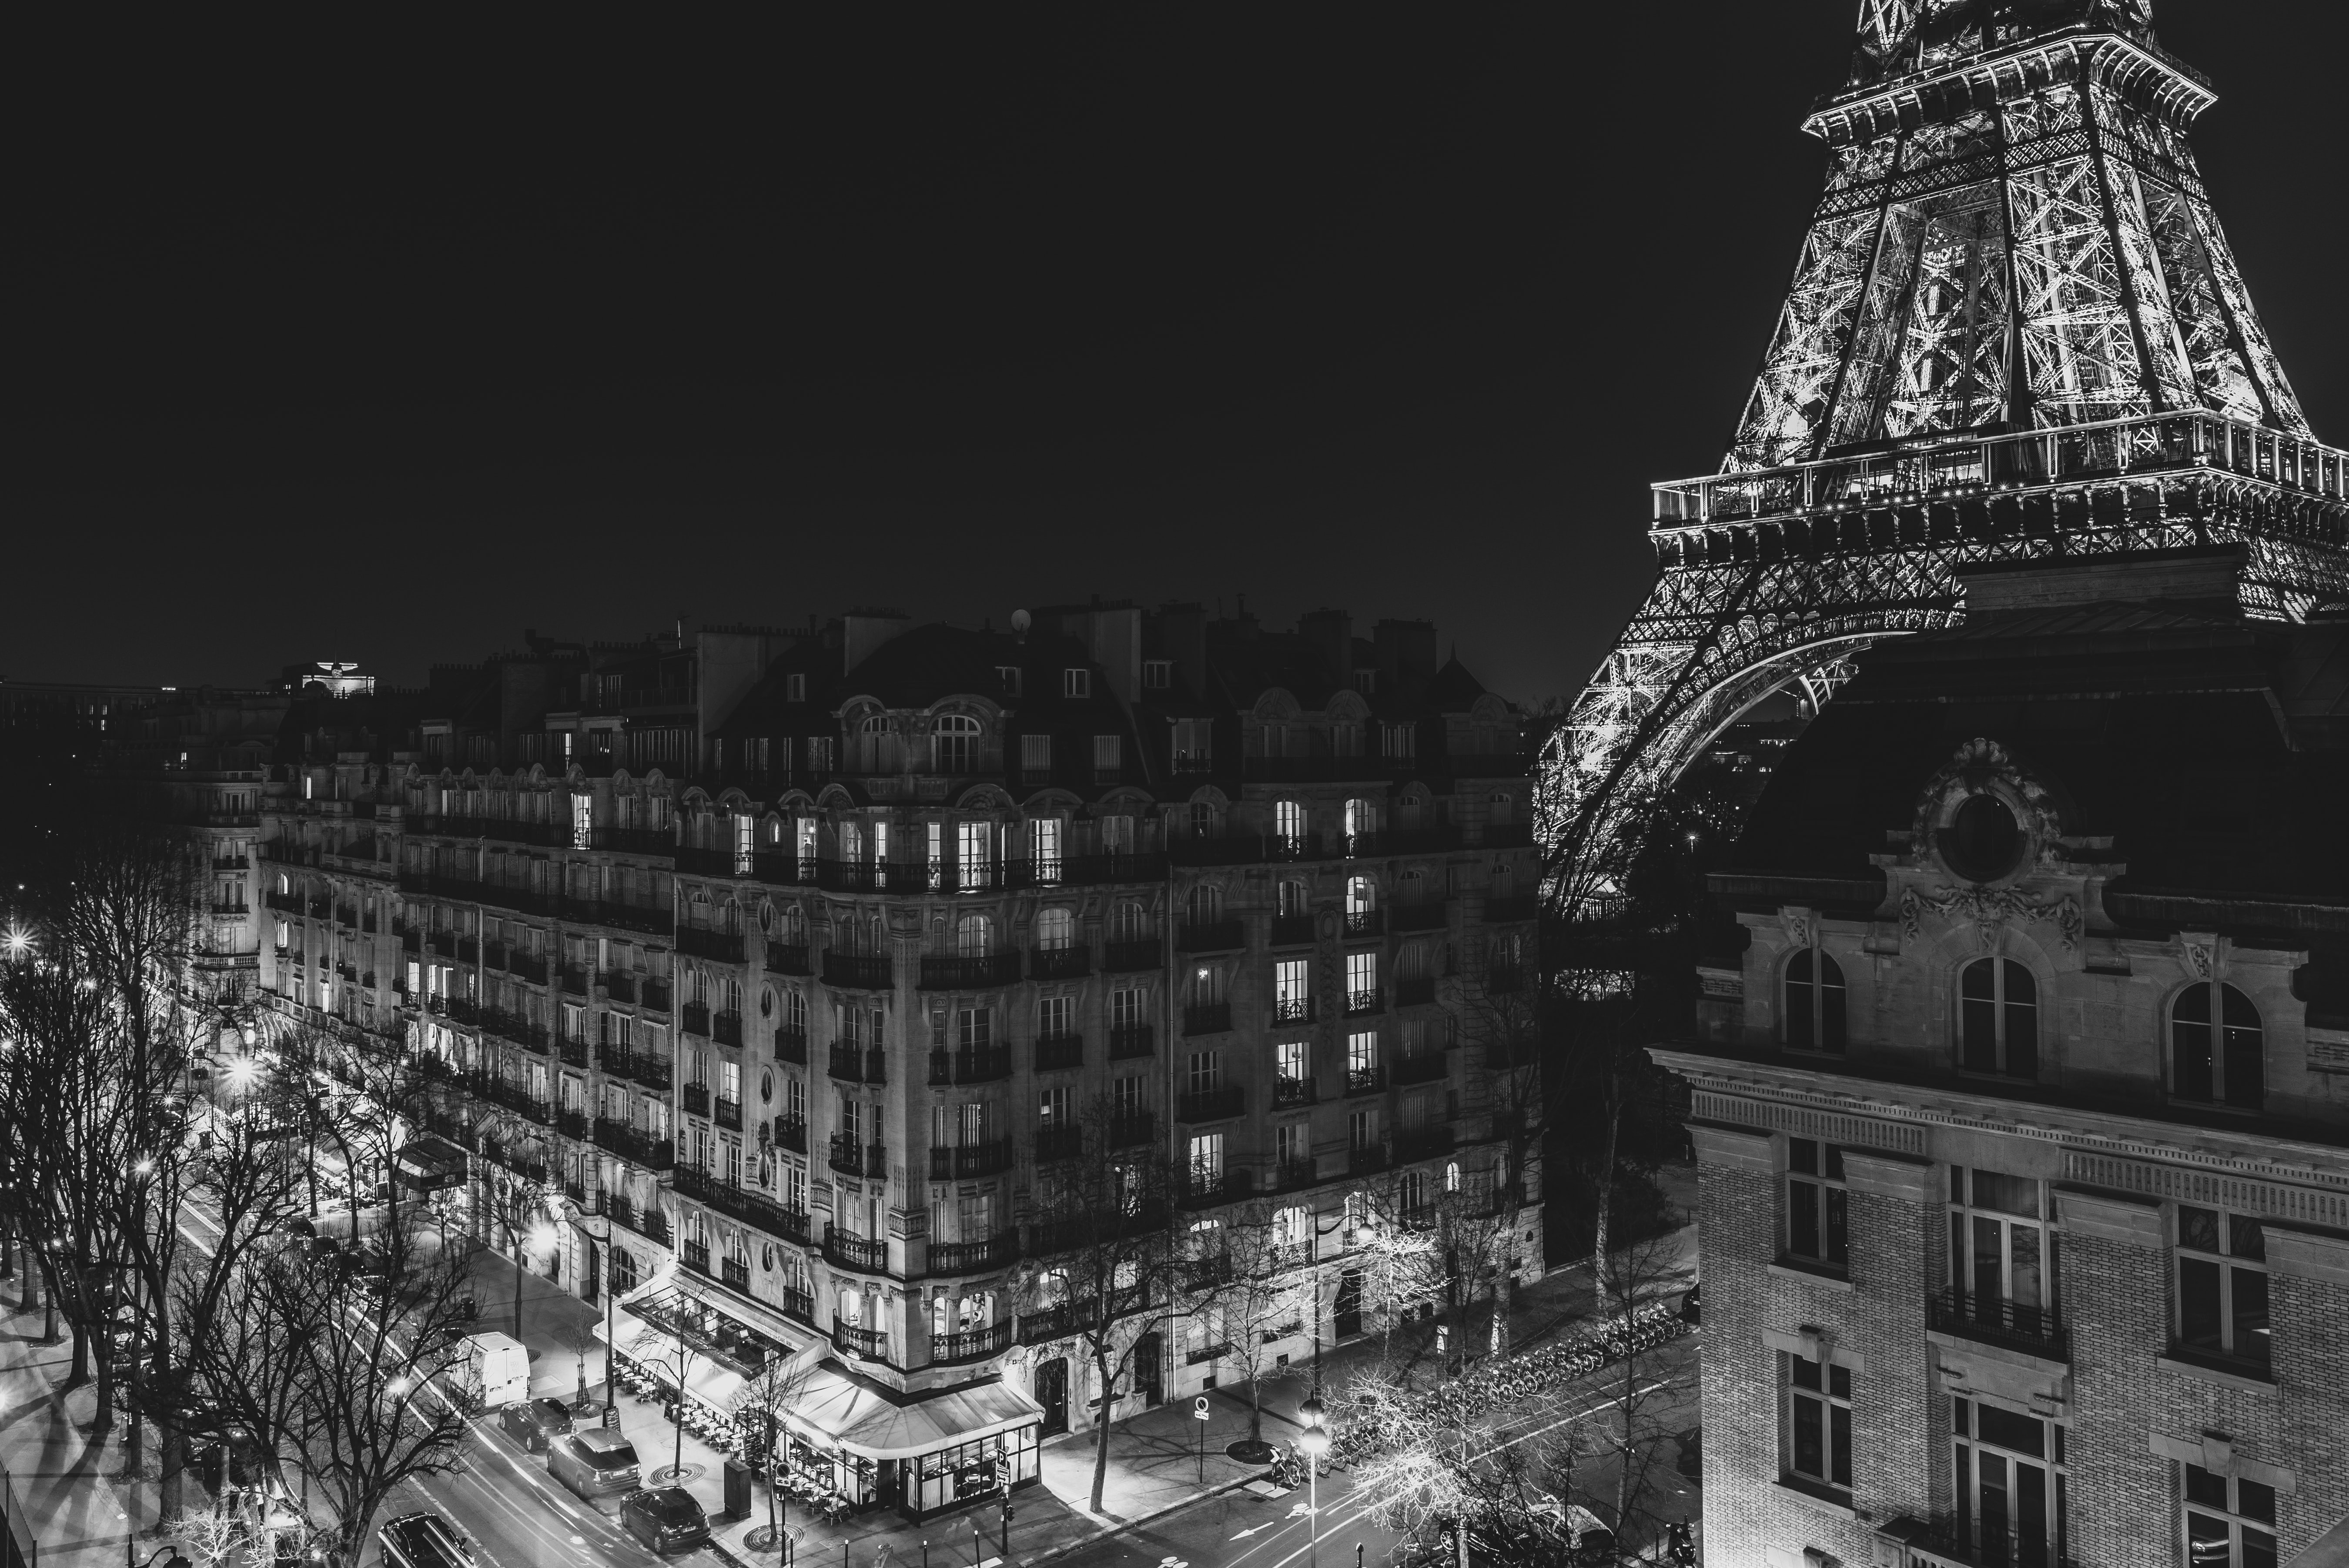 A black and white photo showing large buildings in France.